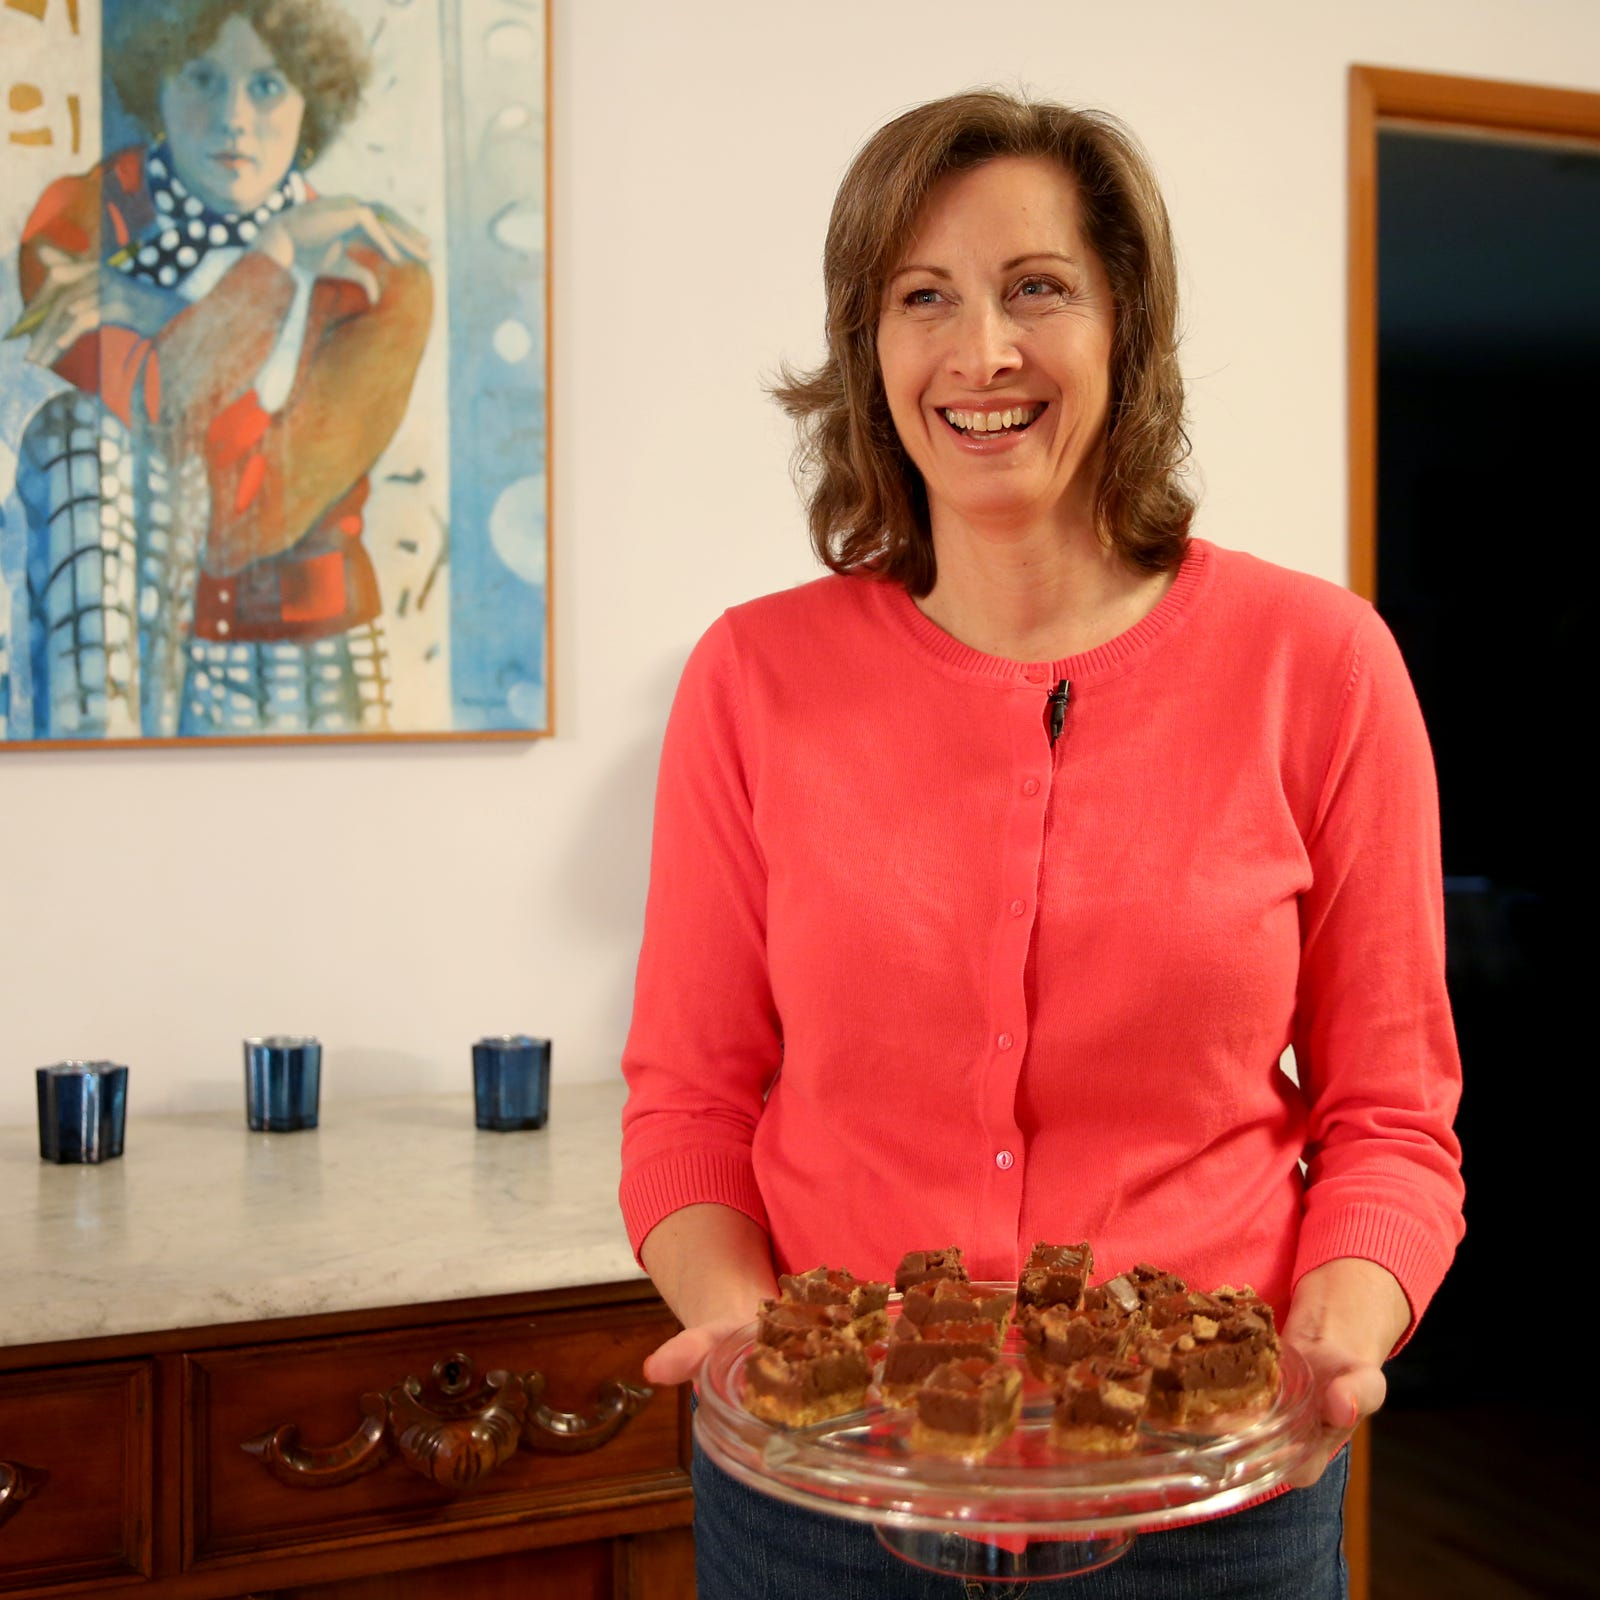 Hubbard resident wins 2019 Pillsbury Bake-Off dessert category, becomes finalist